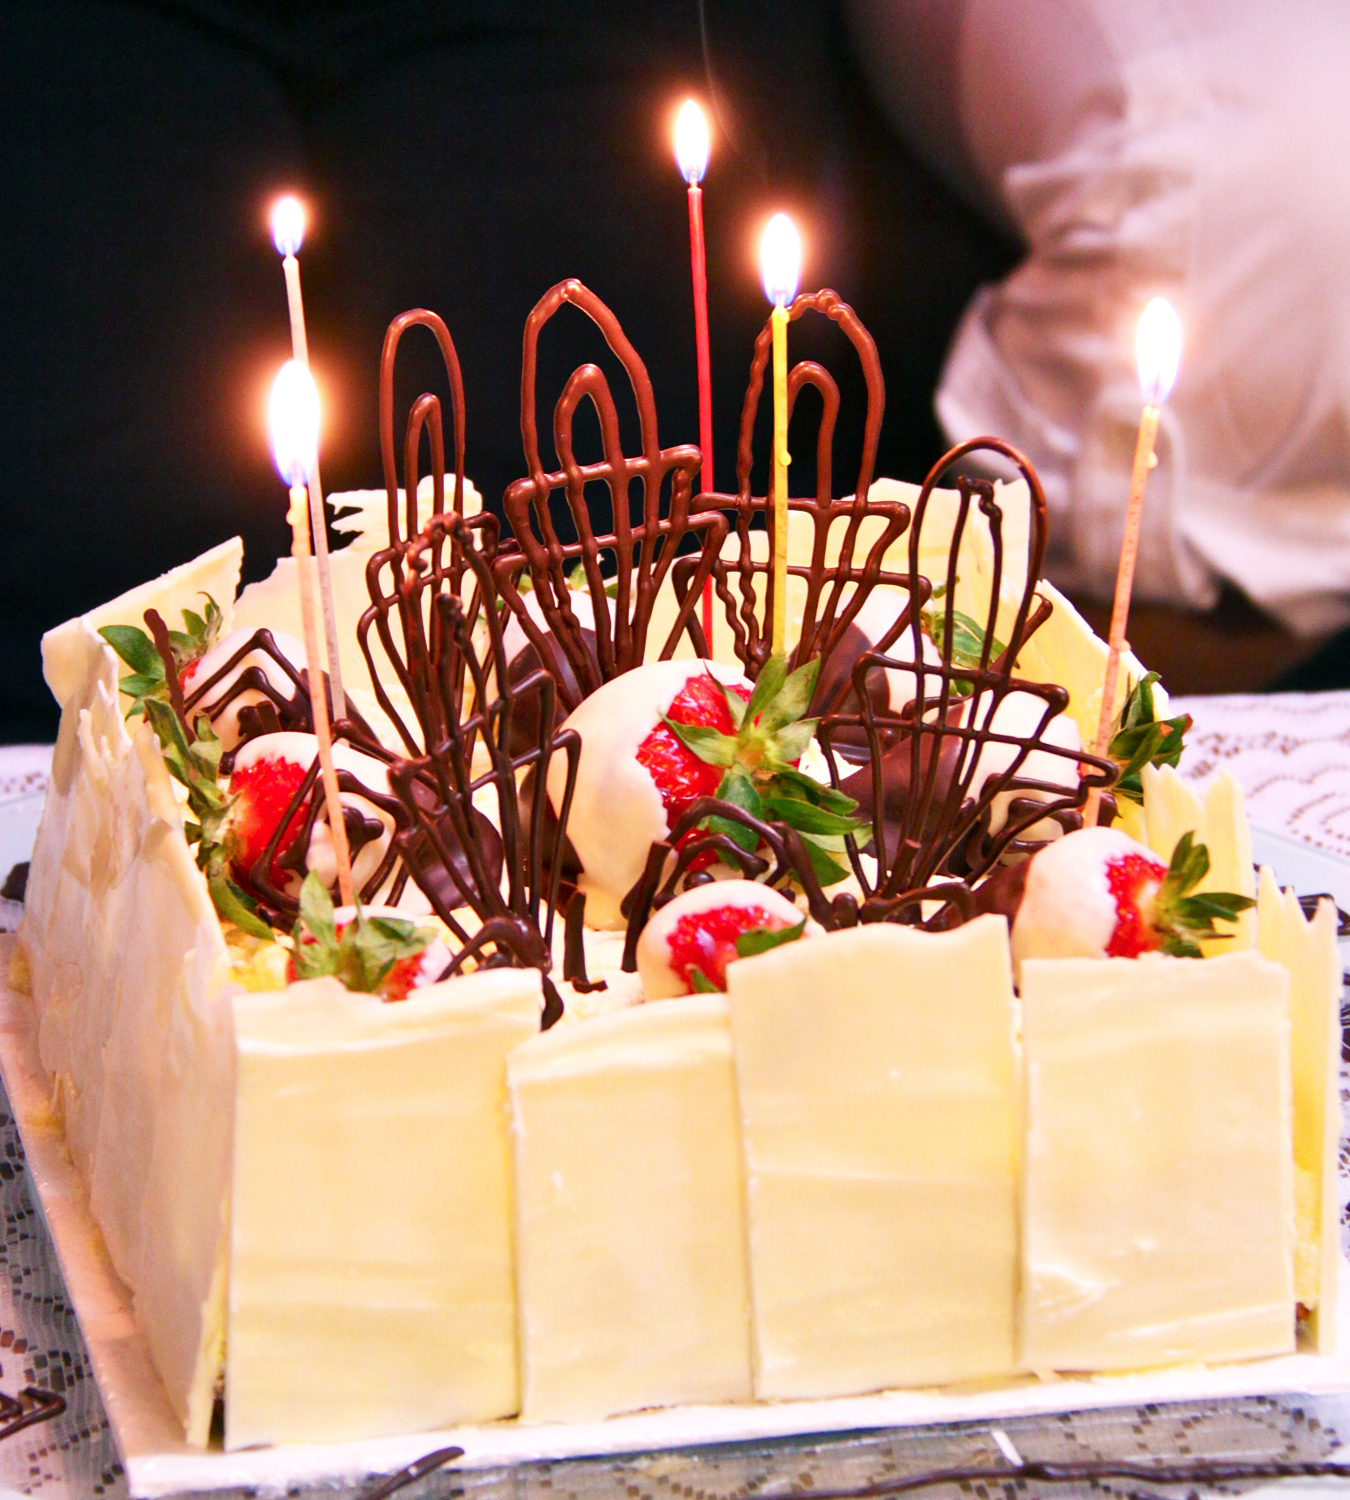 Strawberry Chocolate Birthday Cake